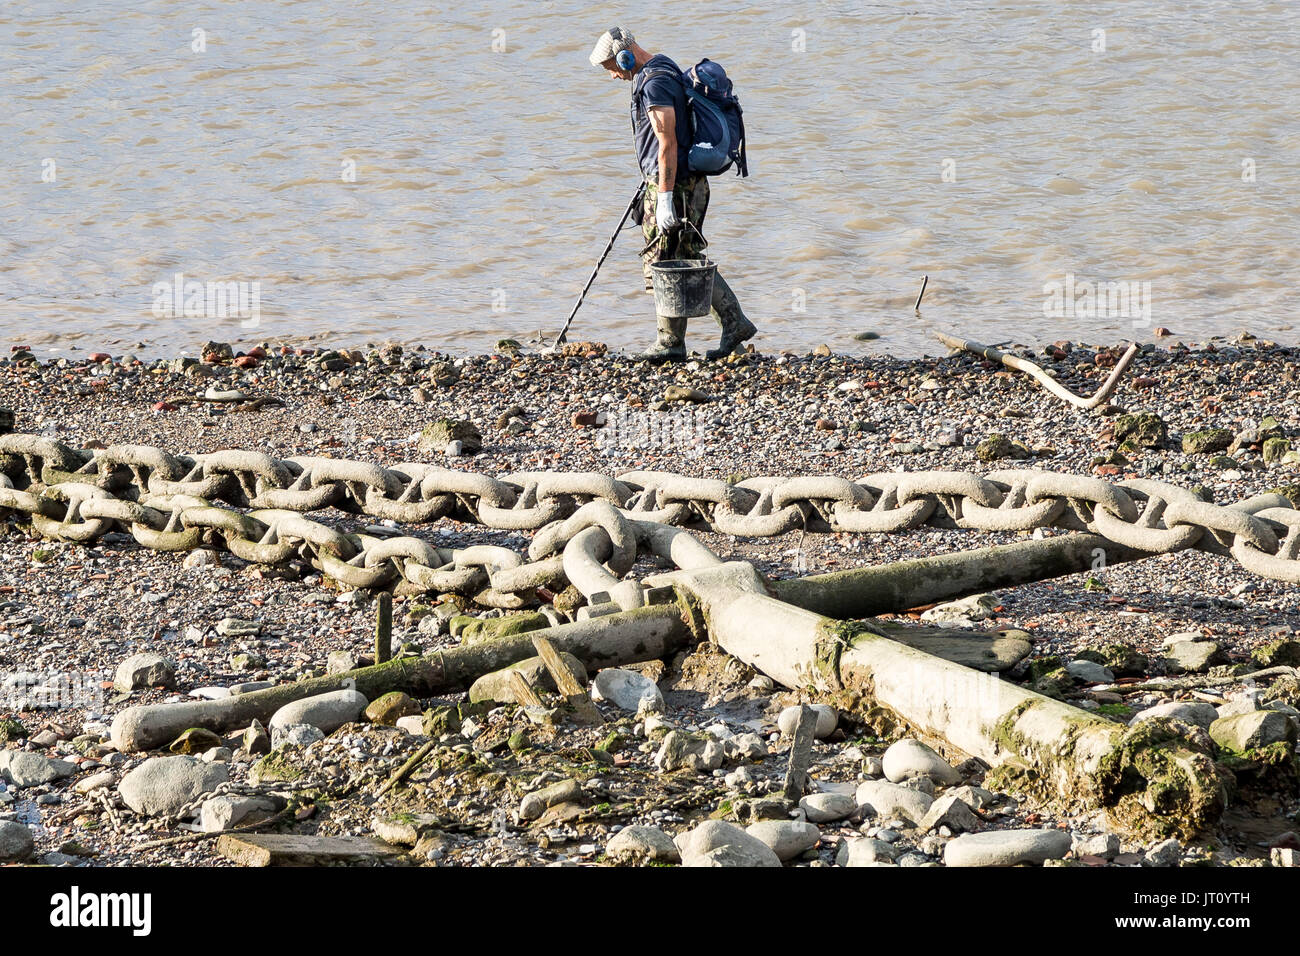 London, UK. 7th August, 2017. An afternoon mudlarker scans the River Thames foreshore near Greenwich with a metal detector searching for remnants of the past. © Guy Corbishley/Alamy Live News - Stock Image